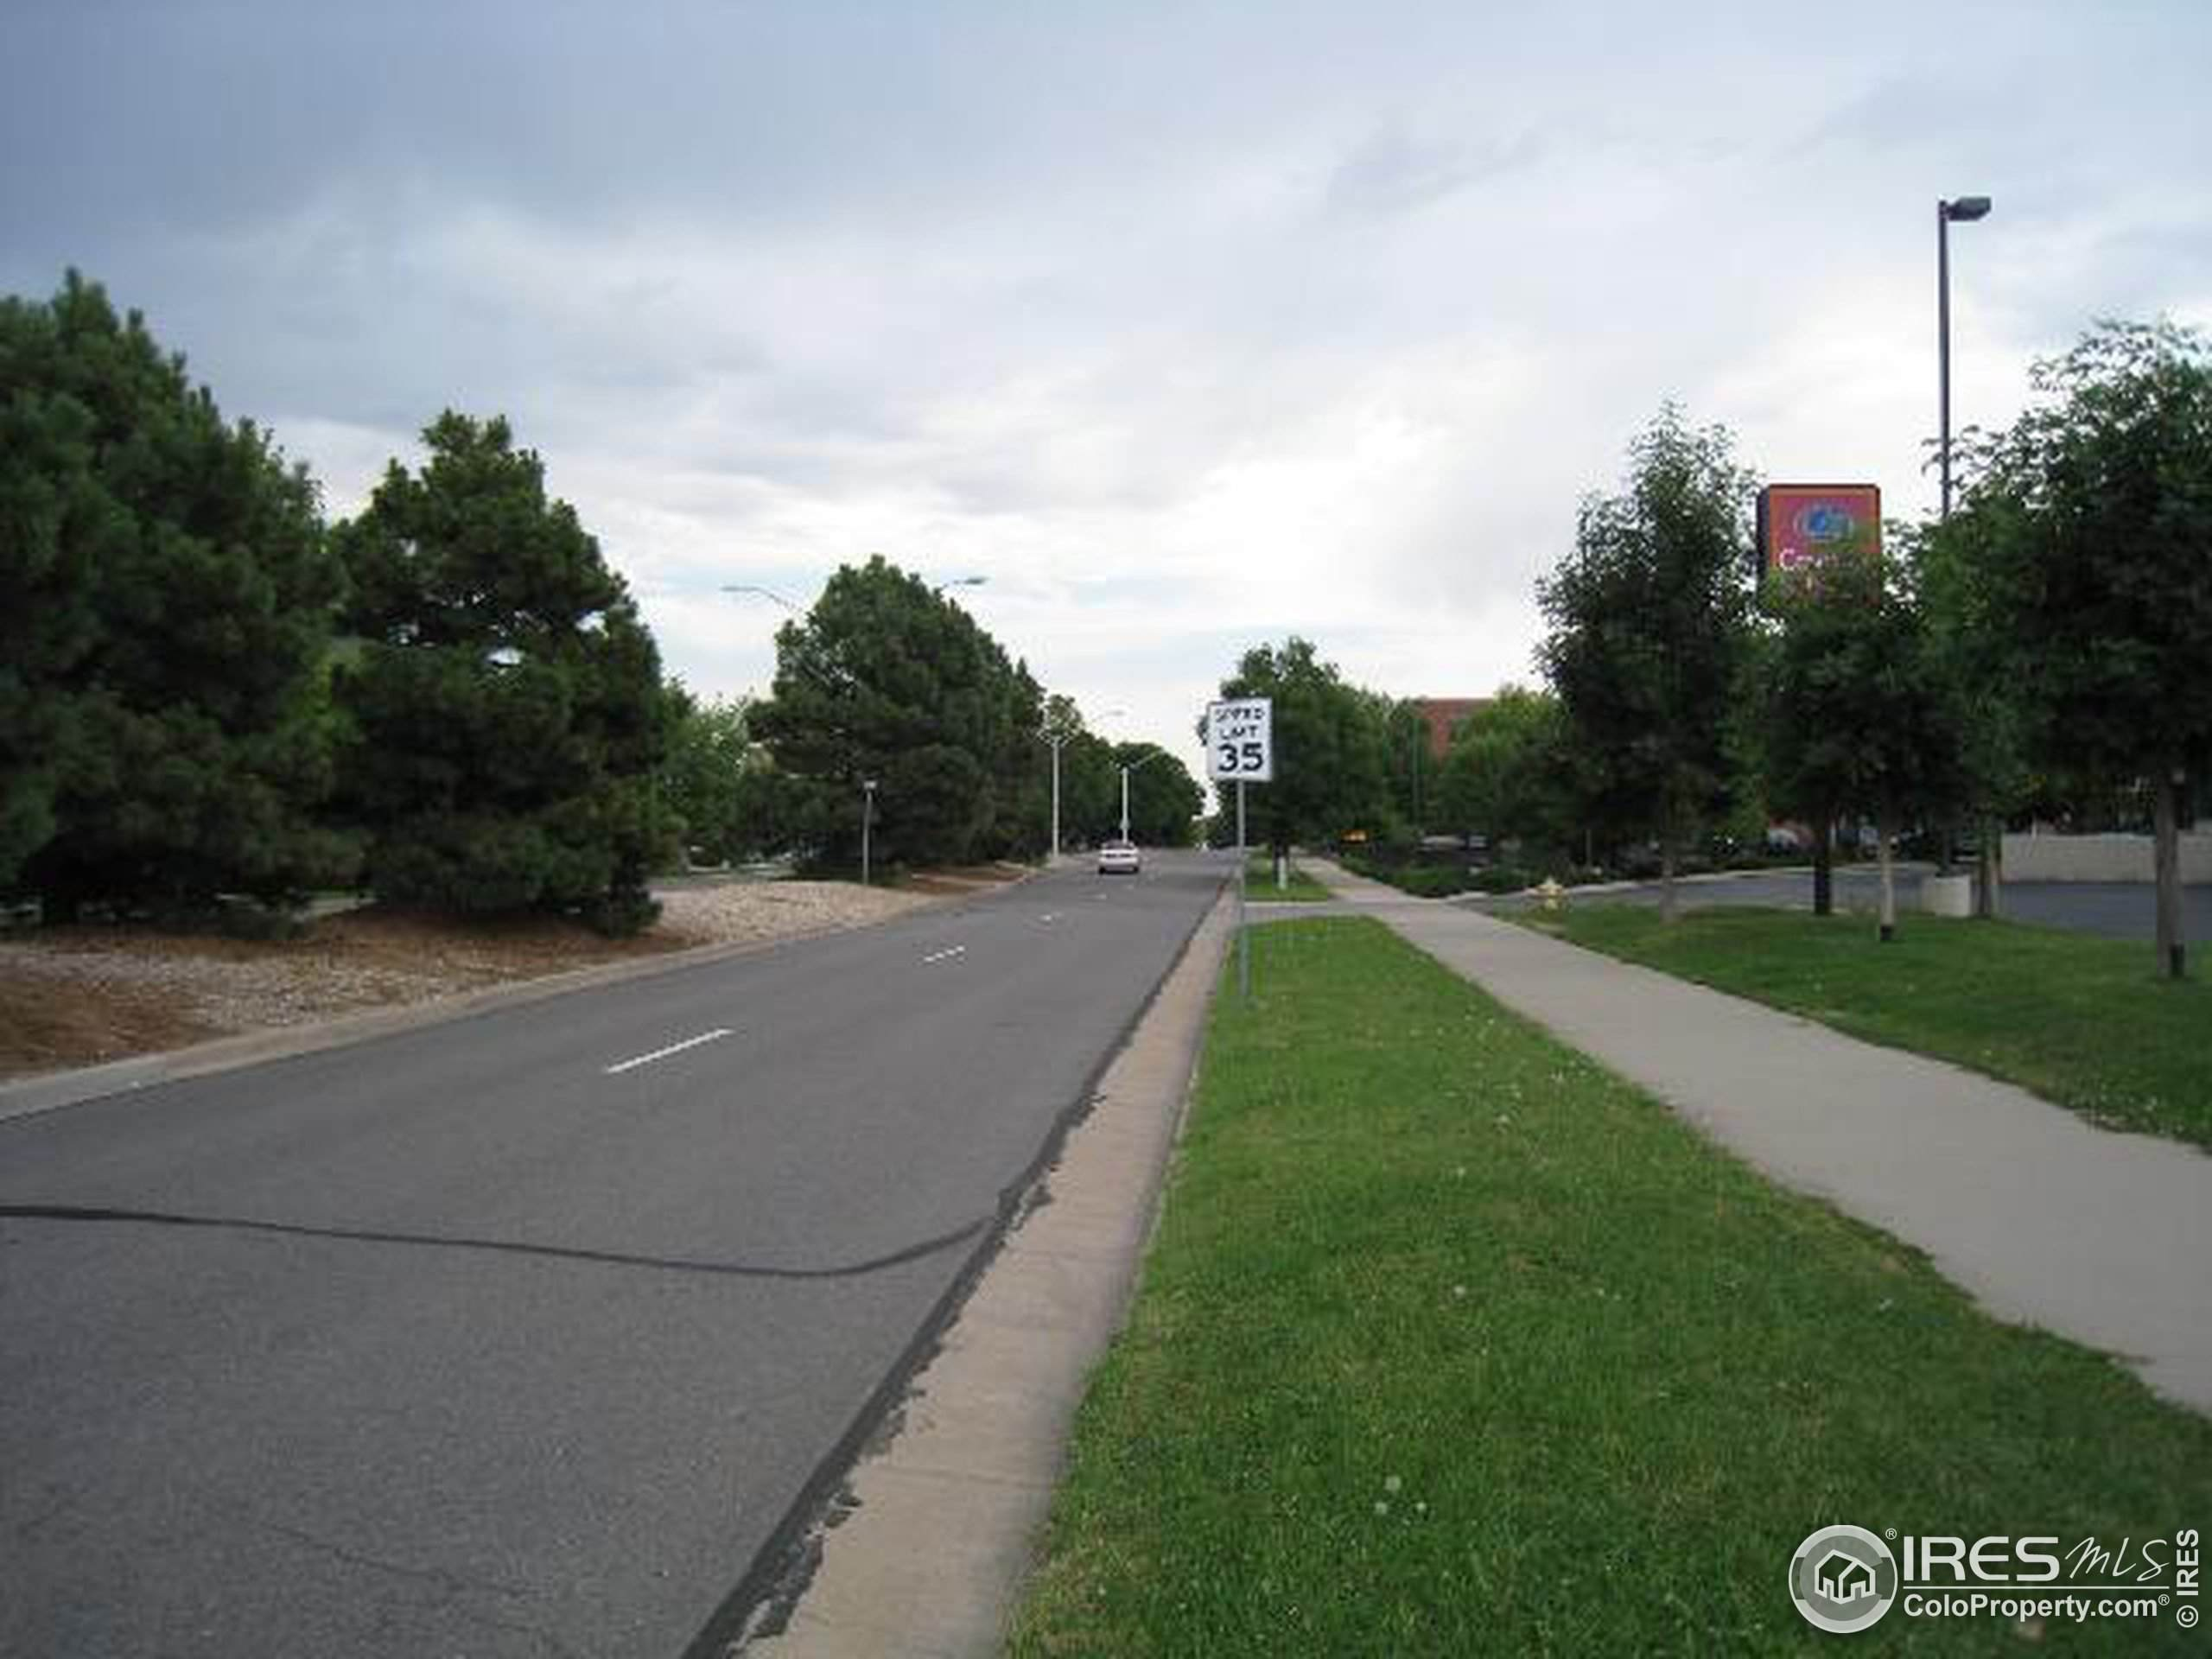 9850 Memphis St, Commerce City, CO 80022 (MLS #878117) :: 8z Real Estate